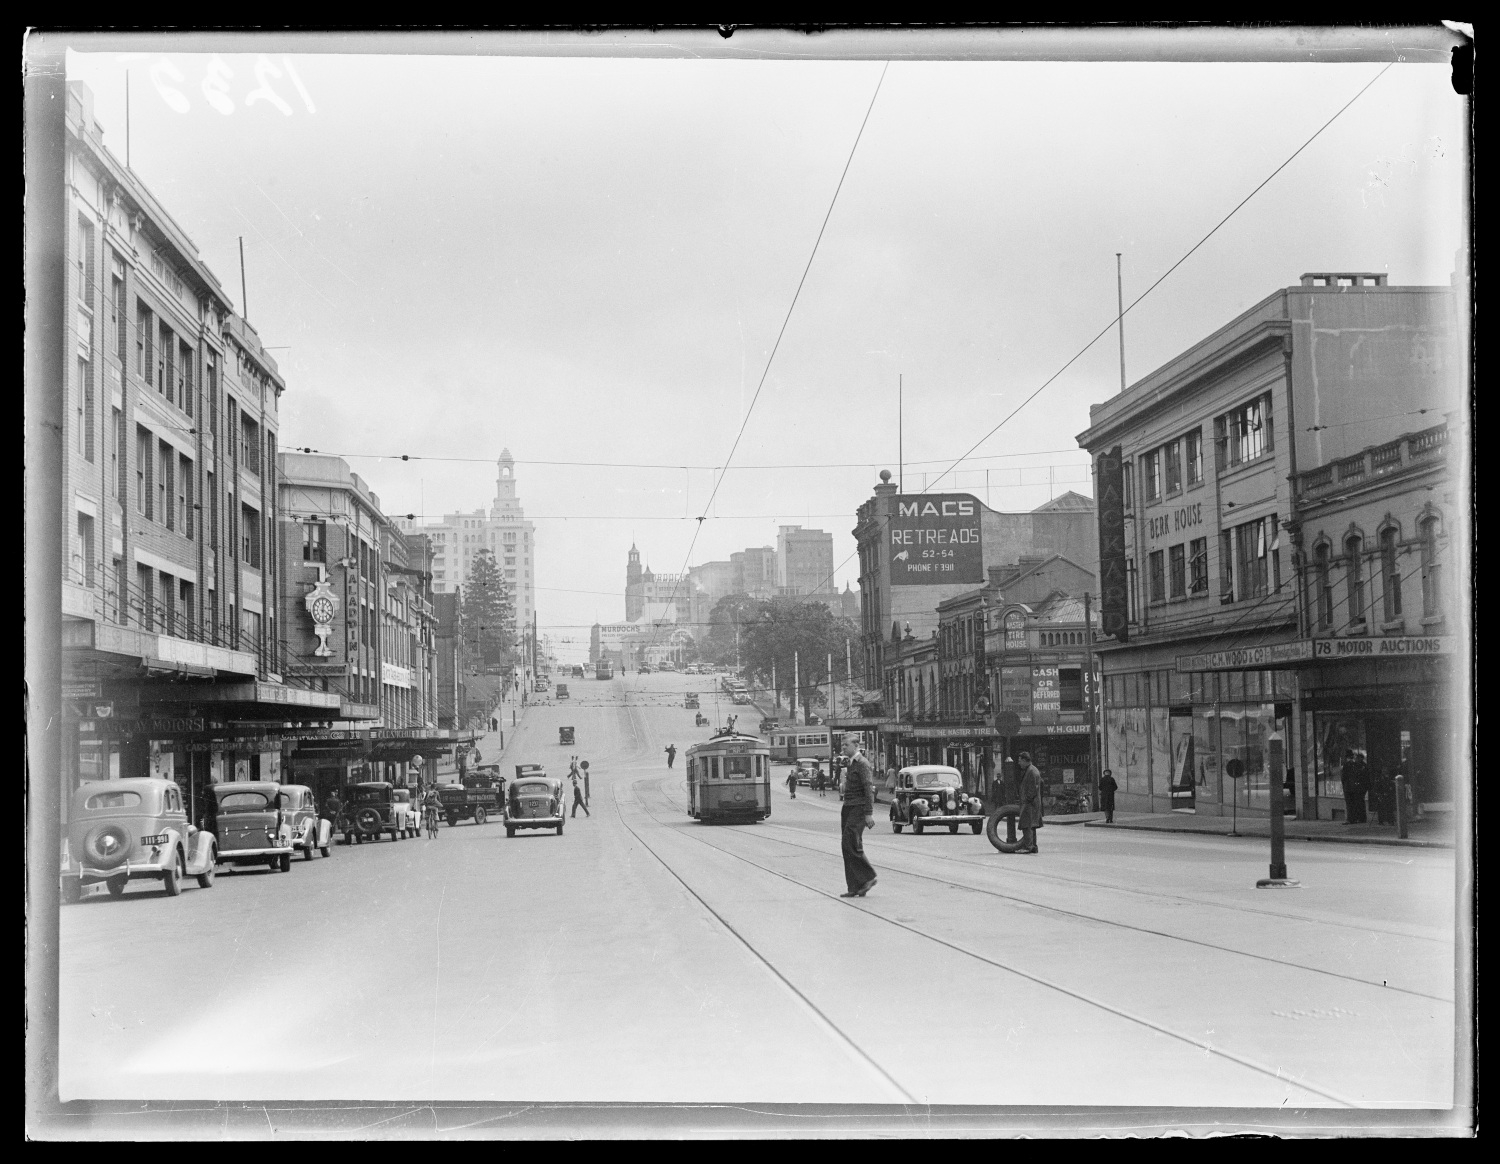 William Street looking west to the city from East Sydney - Woolloomooloo, c 1920s - 1930s